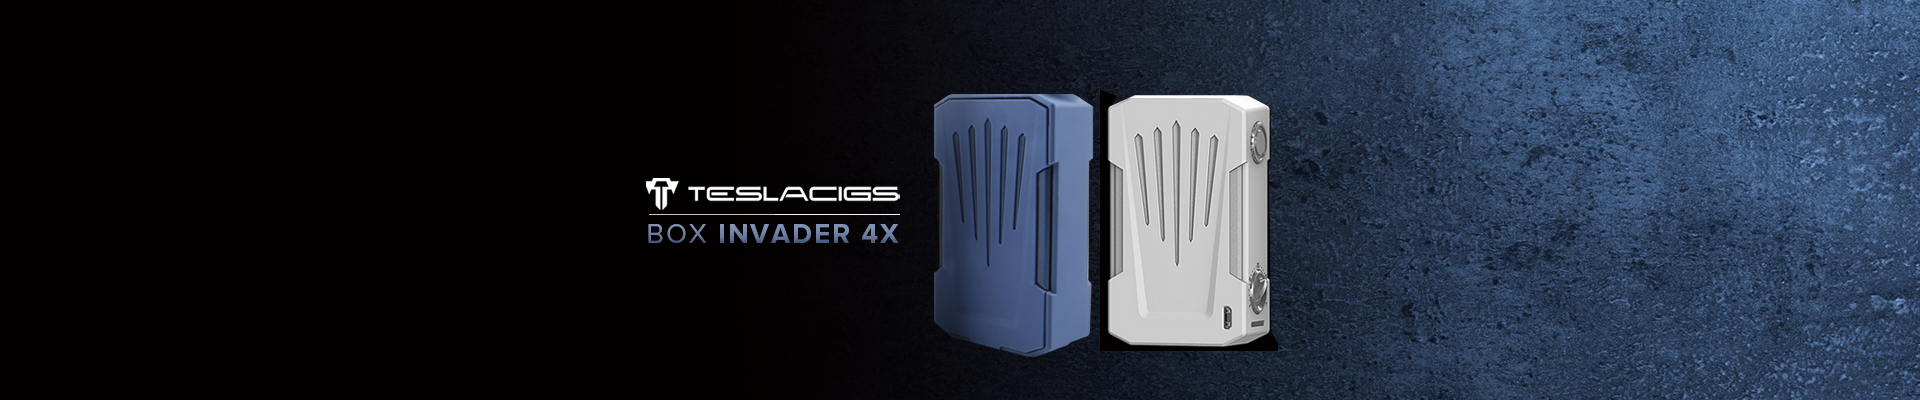 Box Invader X4 - Teslacig®